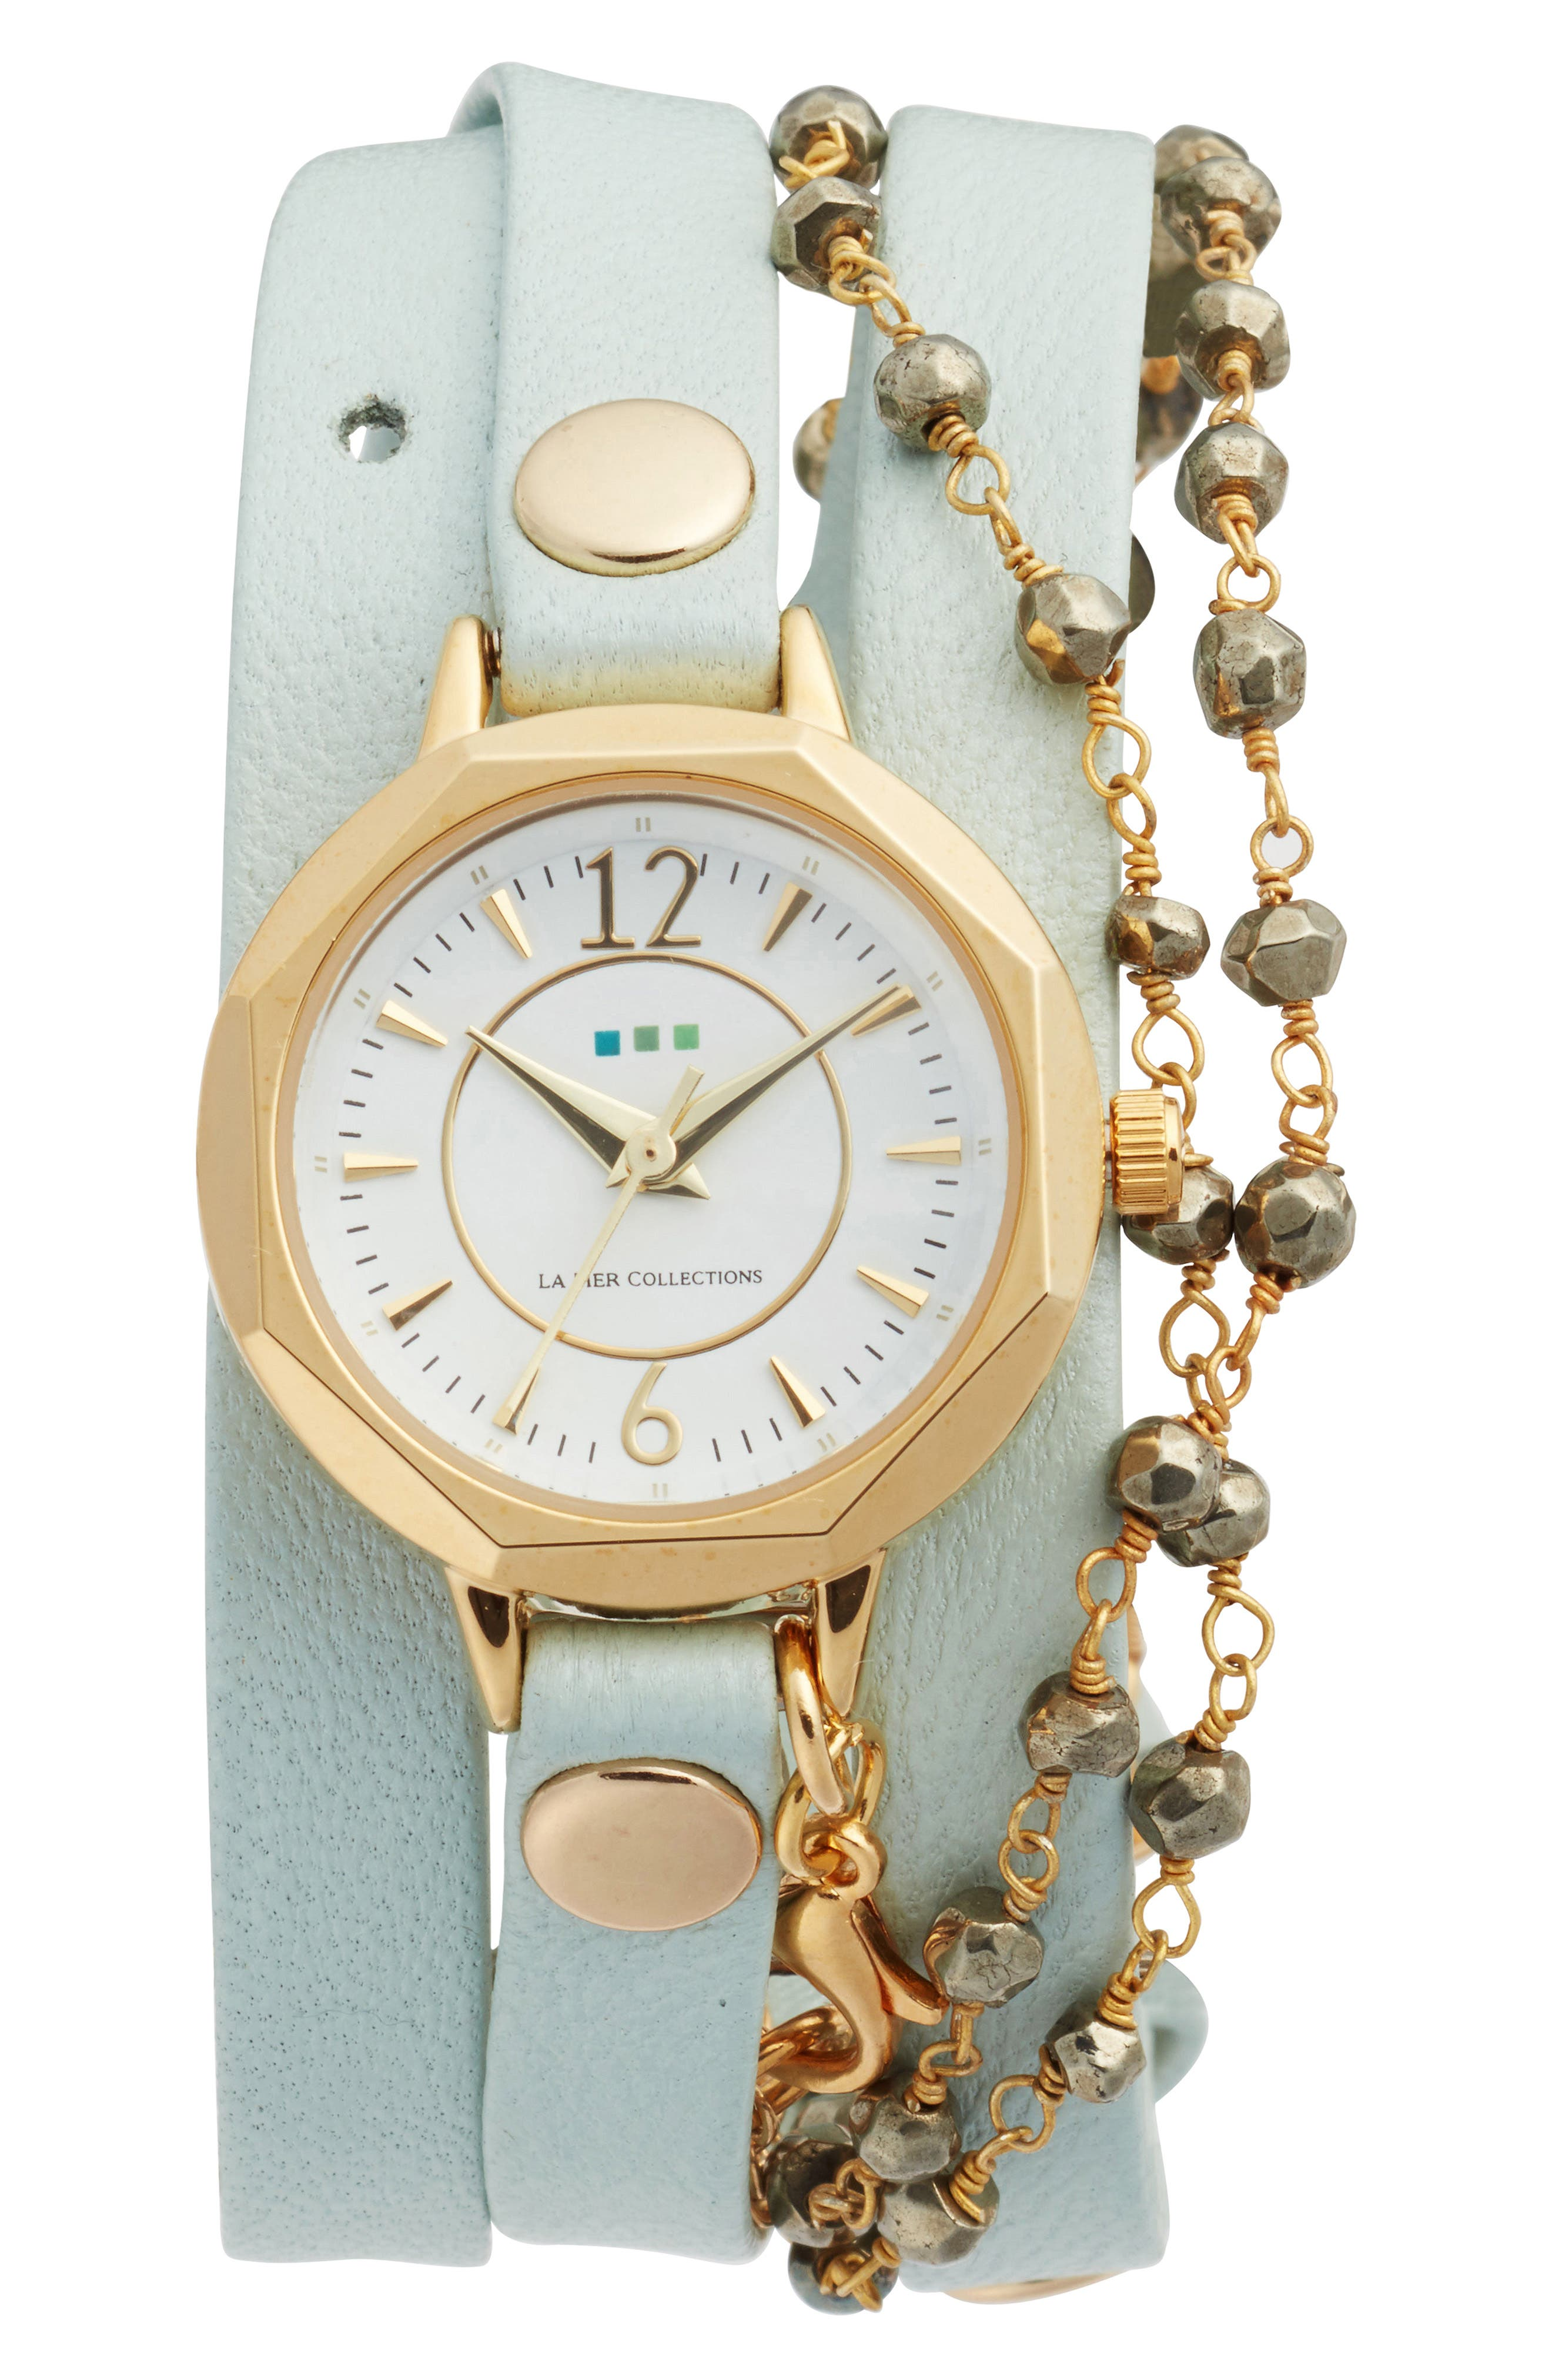 La Mer Collections Perth Wrap Leather Strap Watch, 22mm